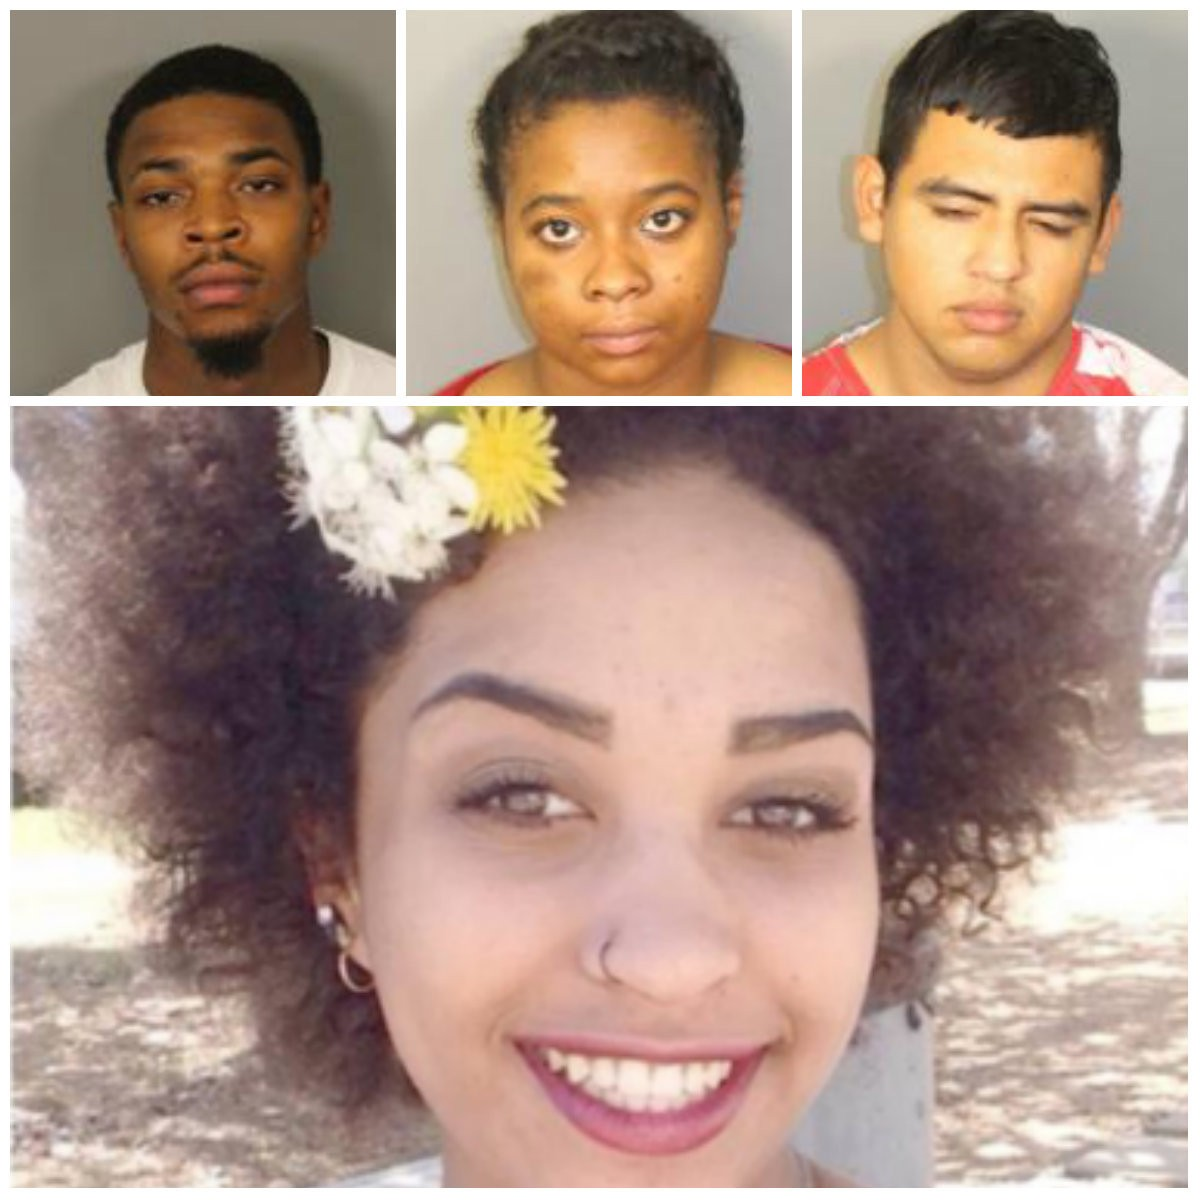 Ashlynn 3 more charged with capital murder in shooting death of